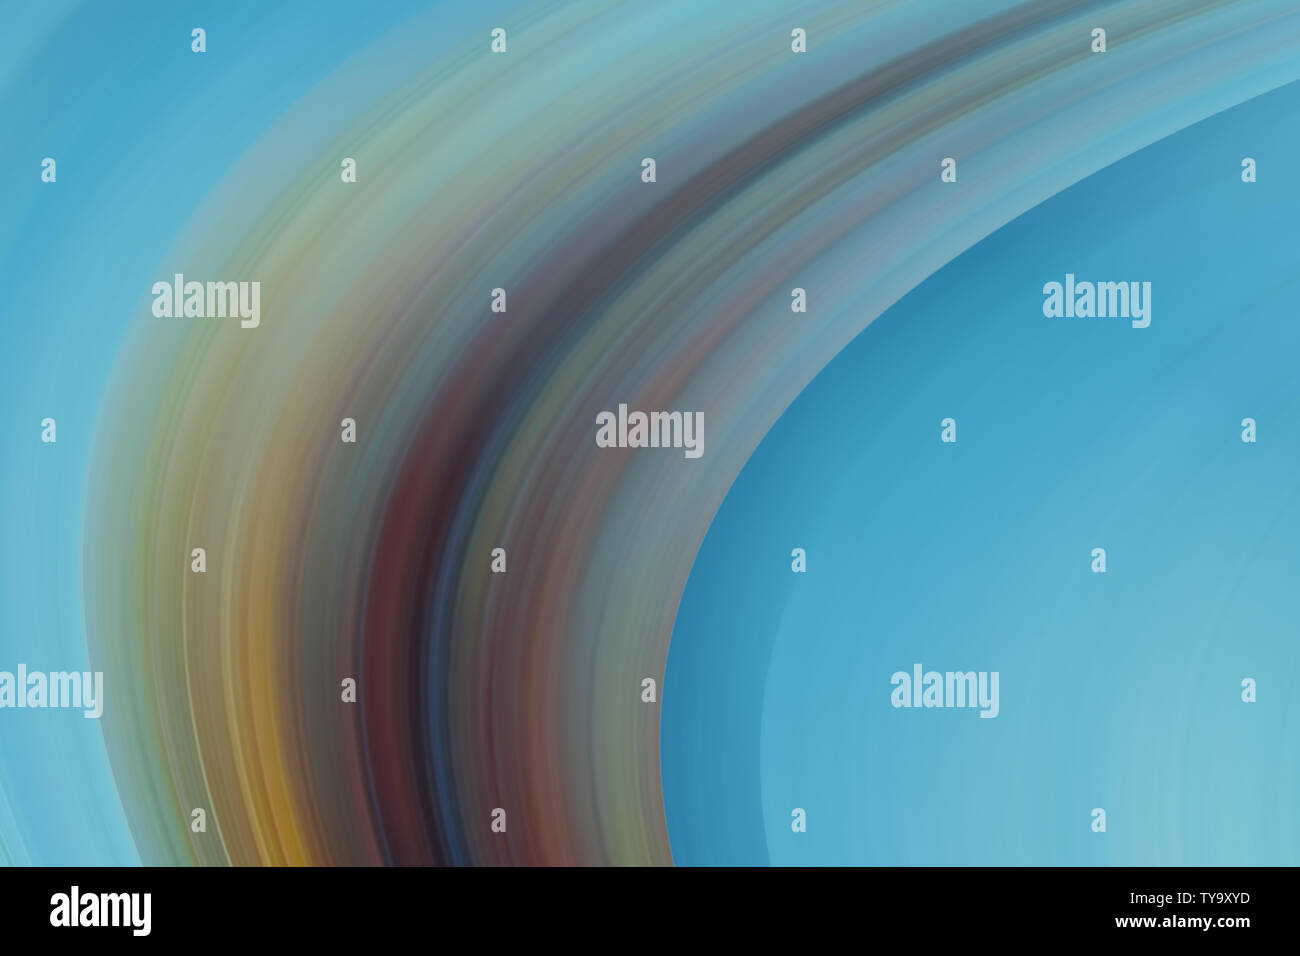 Muted coloured curved multi coloured abstract motion effect blurred background. Blurry abstract design. Pattern can be used for backgrounds, cards, in - Stock Image